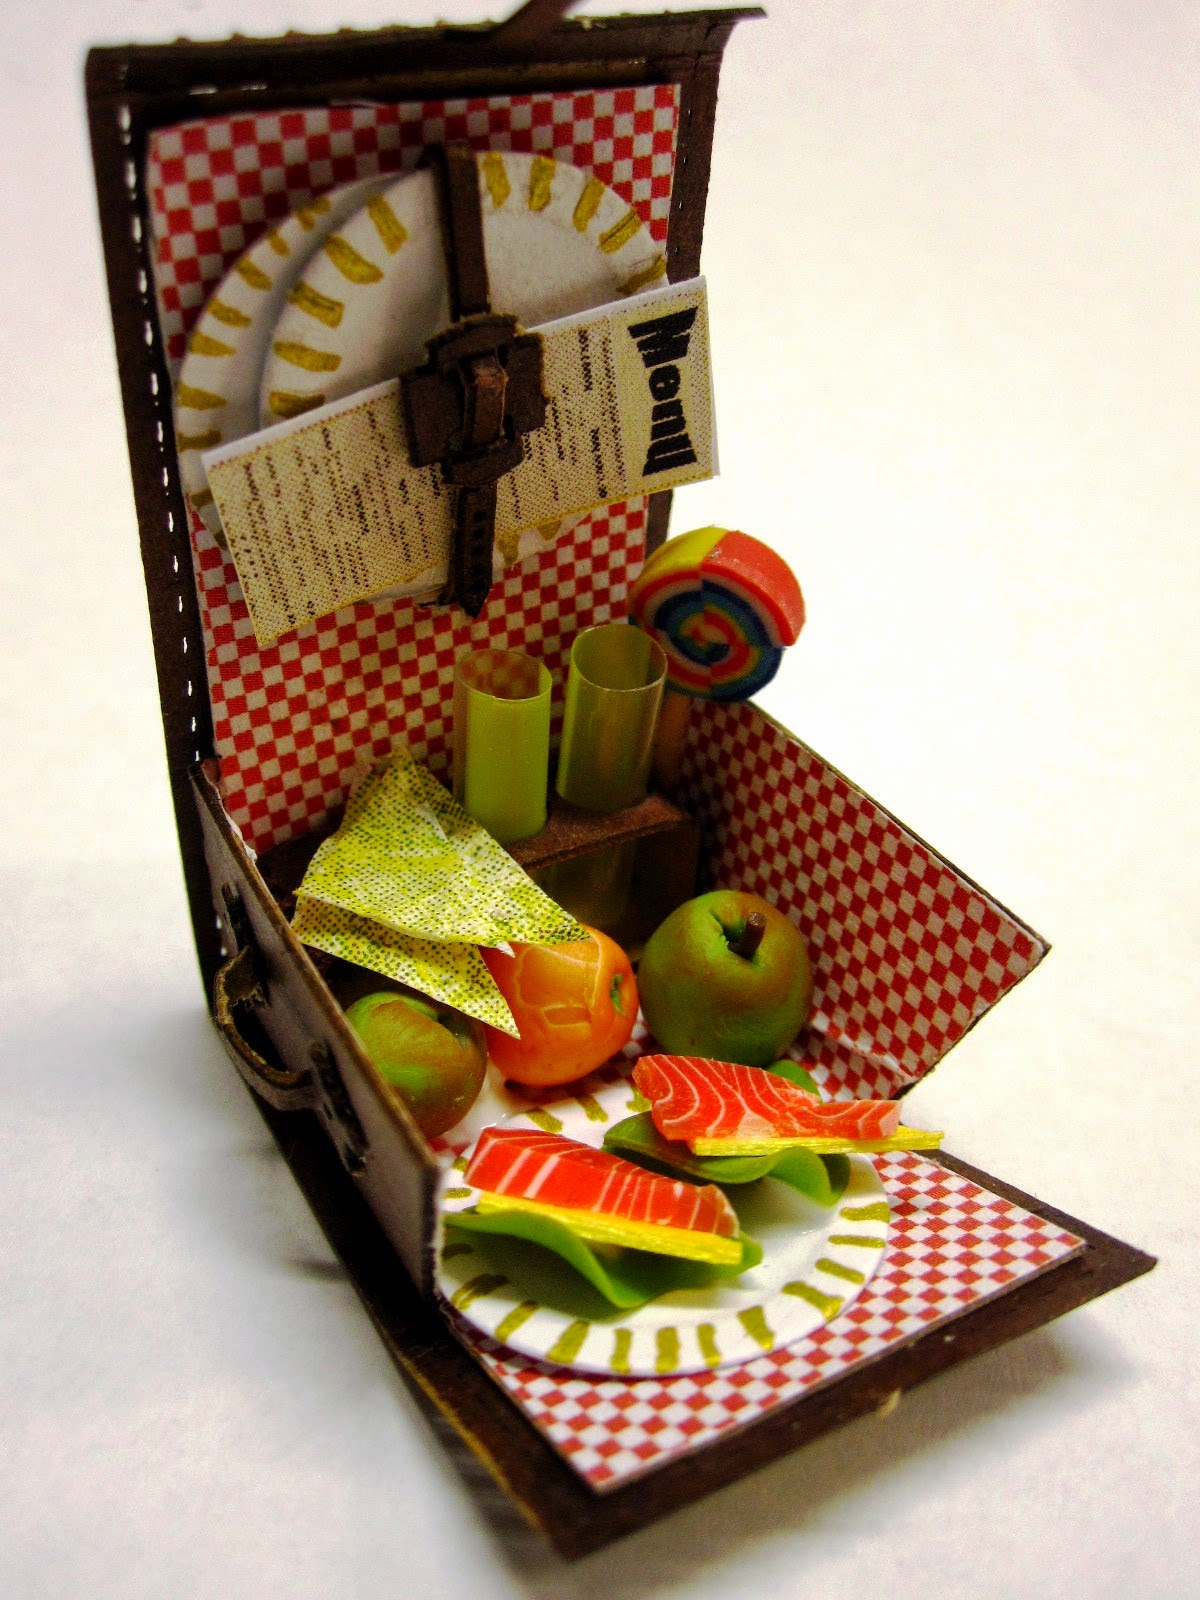 A miniature picnic hamper with red checked lining, holding two glasses, a lollipop, two smoked salmon and lettuce sandwiches, two apples and an orange.